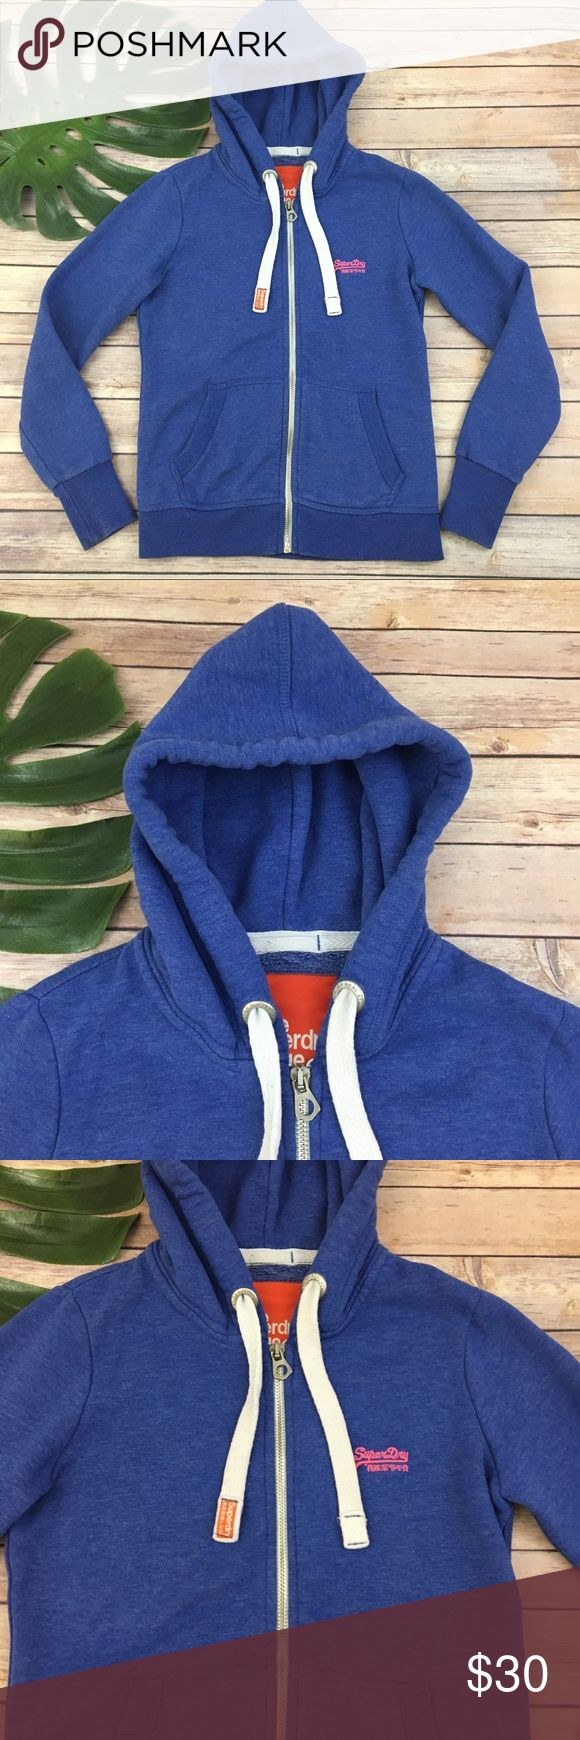 Super dry purple zip up hoodie sweatshirt Superdry women's purple zip up hoodie, size S. It is free from any rips or stains. It measures about 38 inches around the bust and is about 25 inches long. Super Dry Tops Sweatshirts & Hoodies